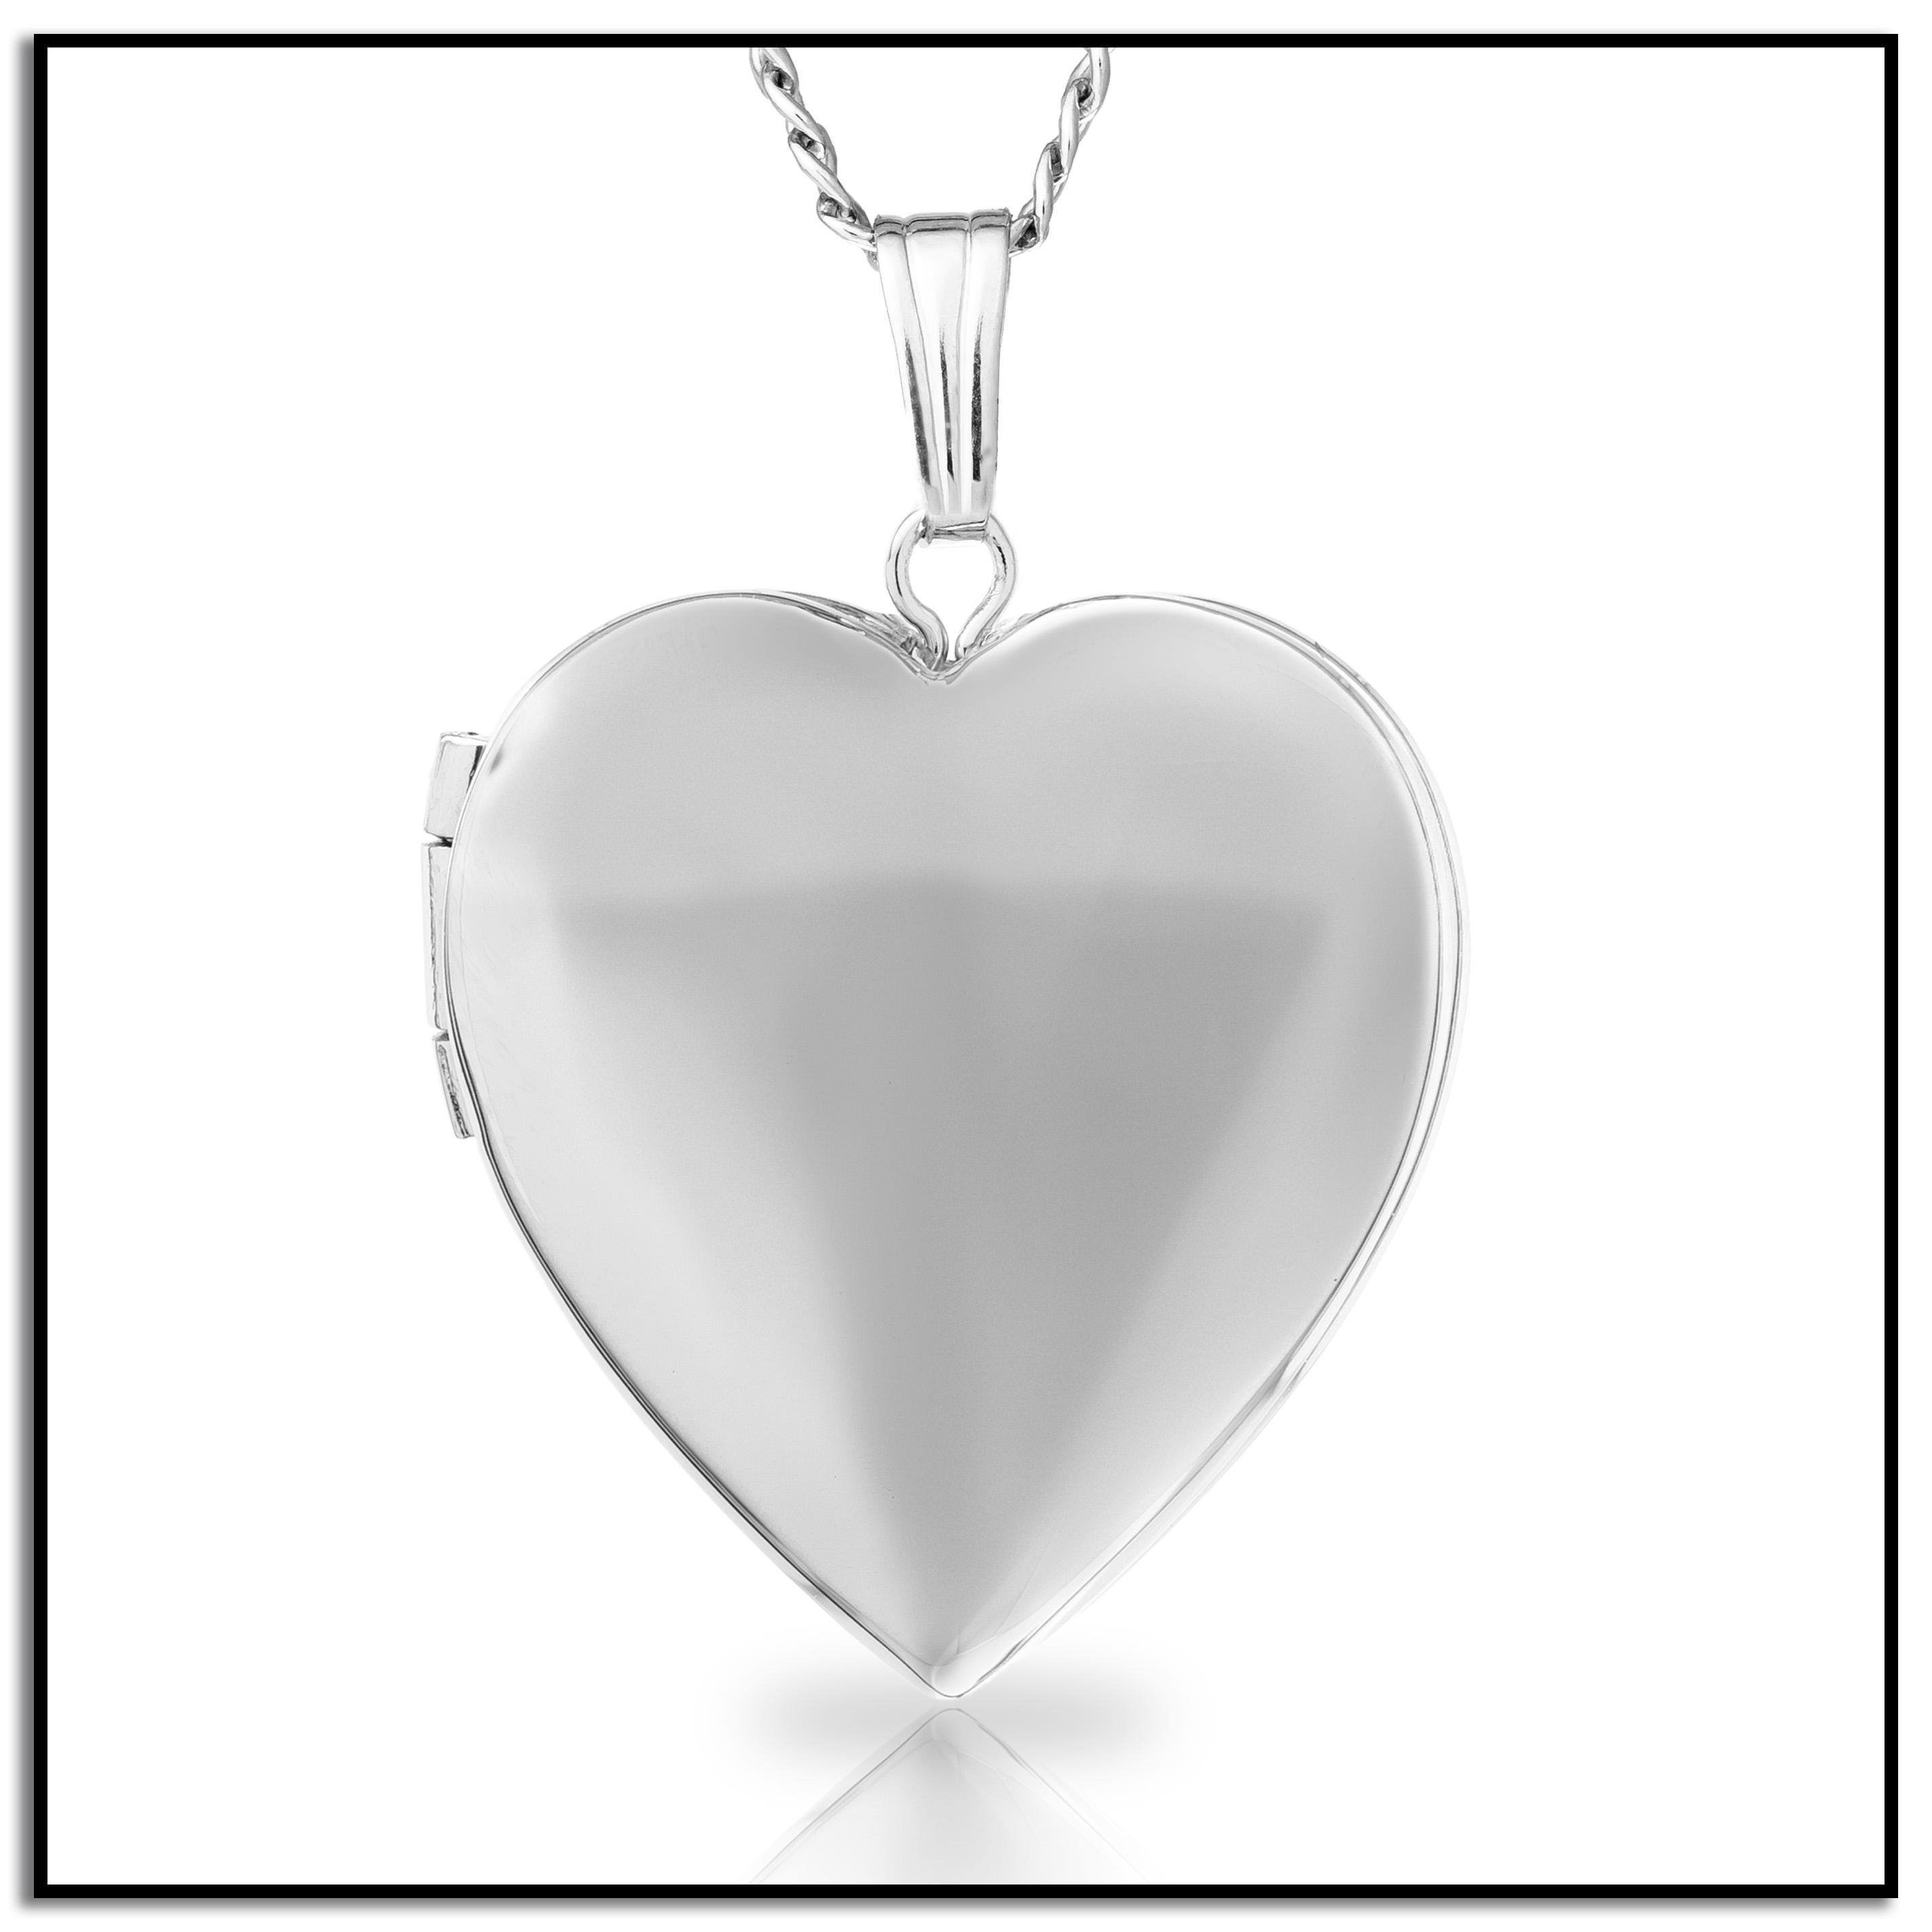 sterling heart weight grams rhod silver front p lockets back design length width locket plated